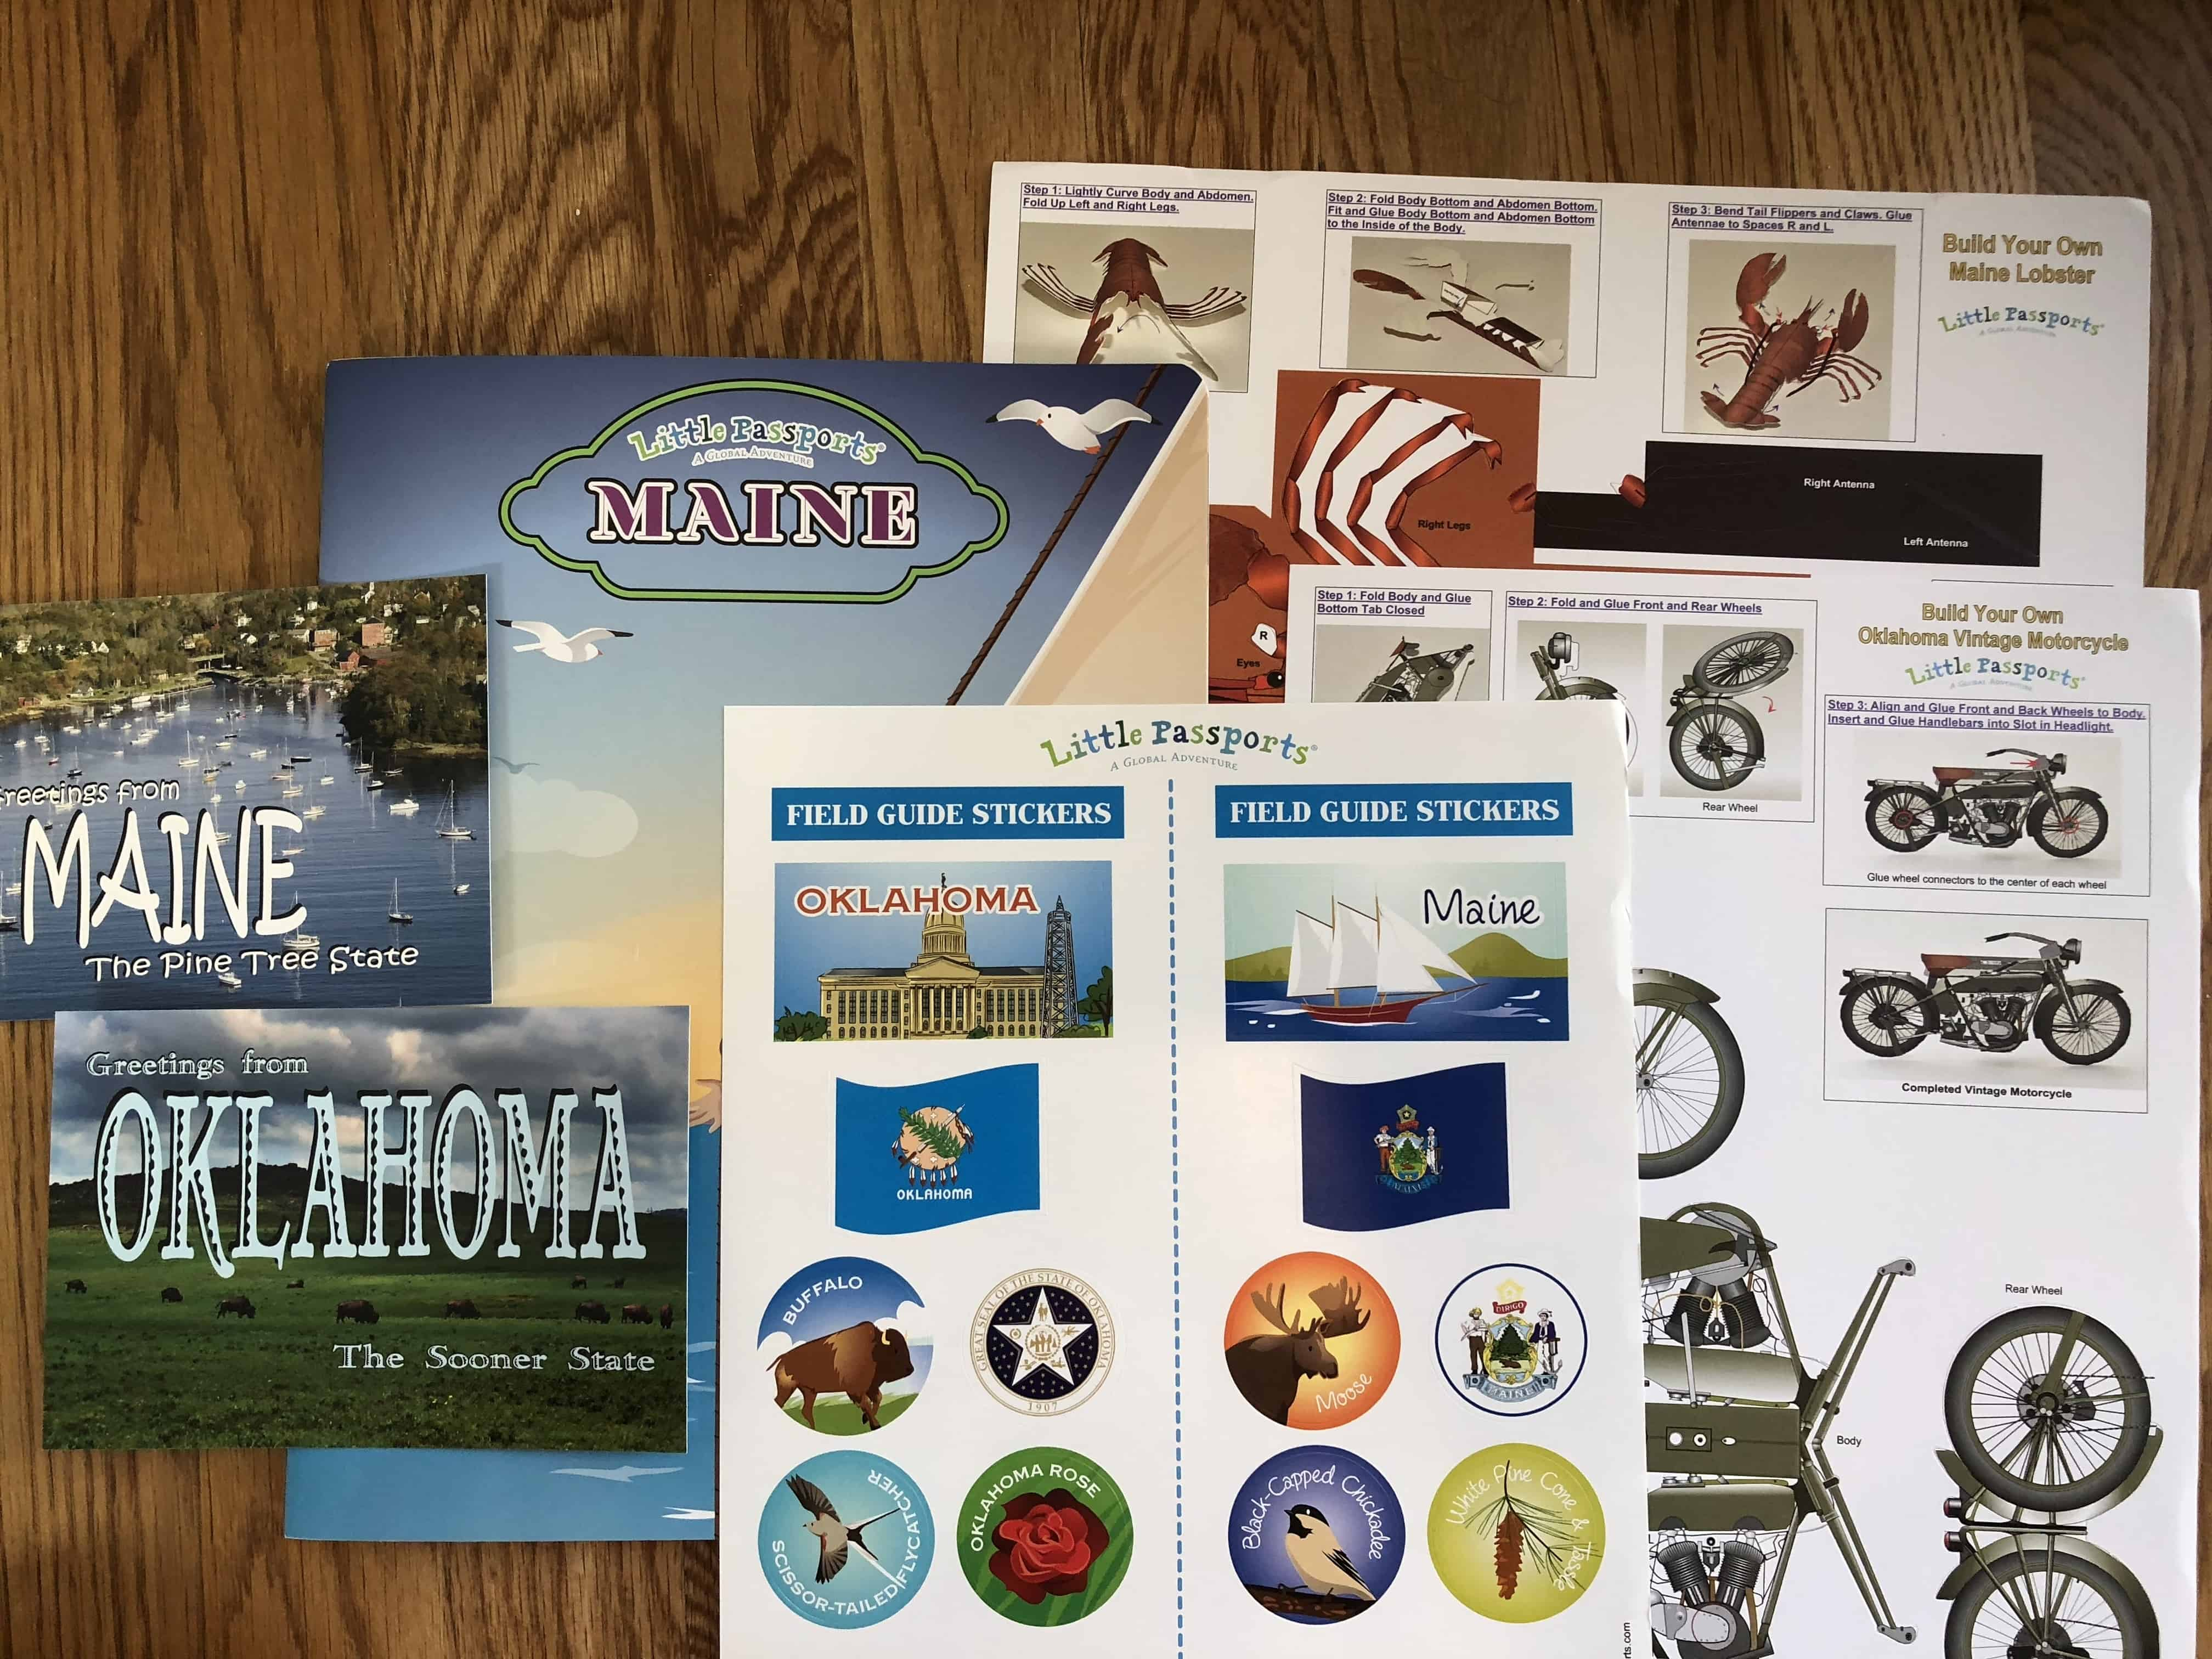 February 2018 Little Passports USA Subscription Box Review + Coupon – Maine and Oklahoma